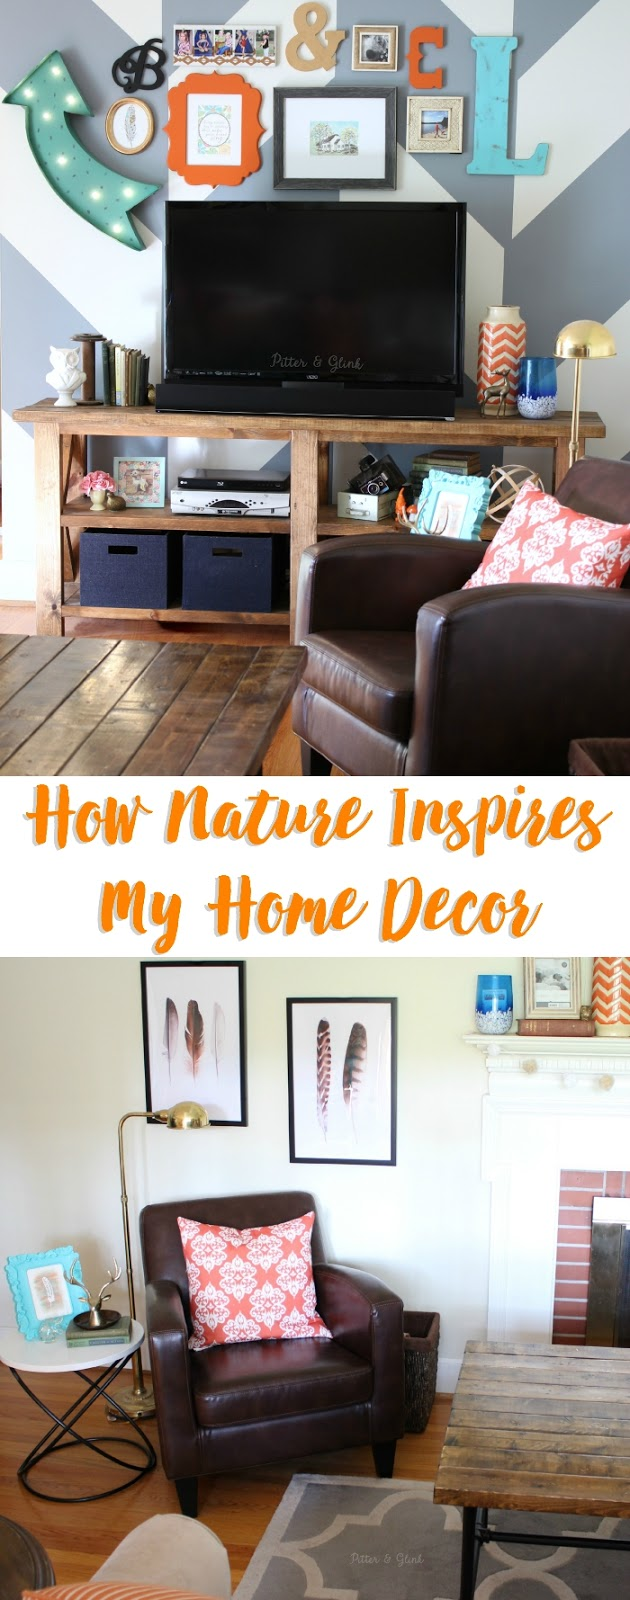 How to Use Nature to Inspire Your Home Decor www.pitterandglink.com